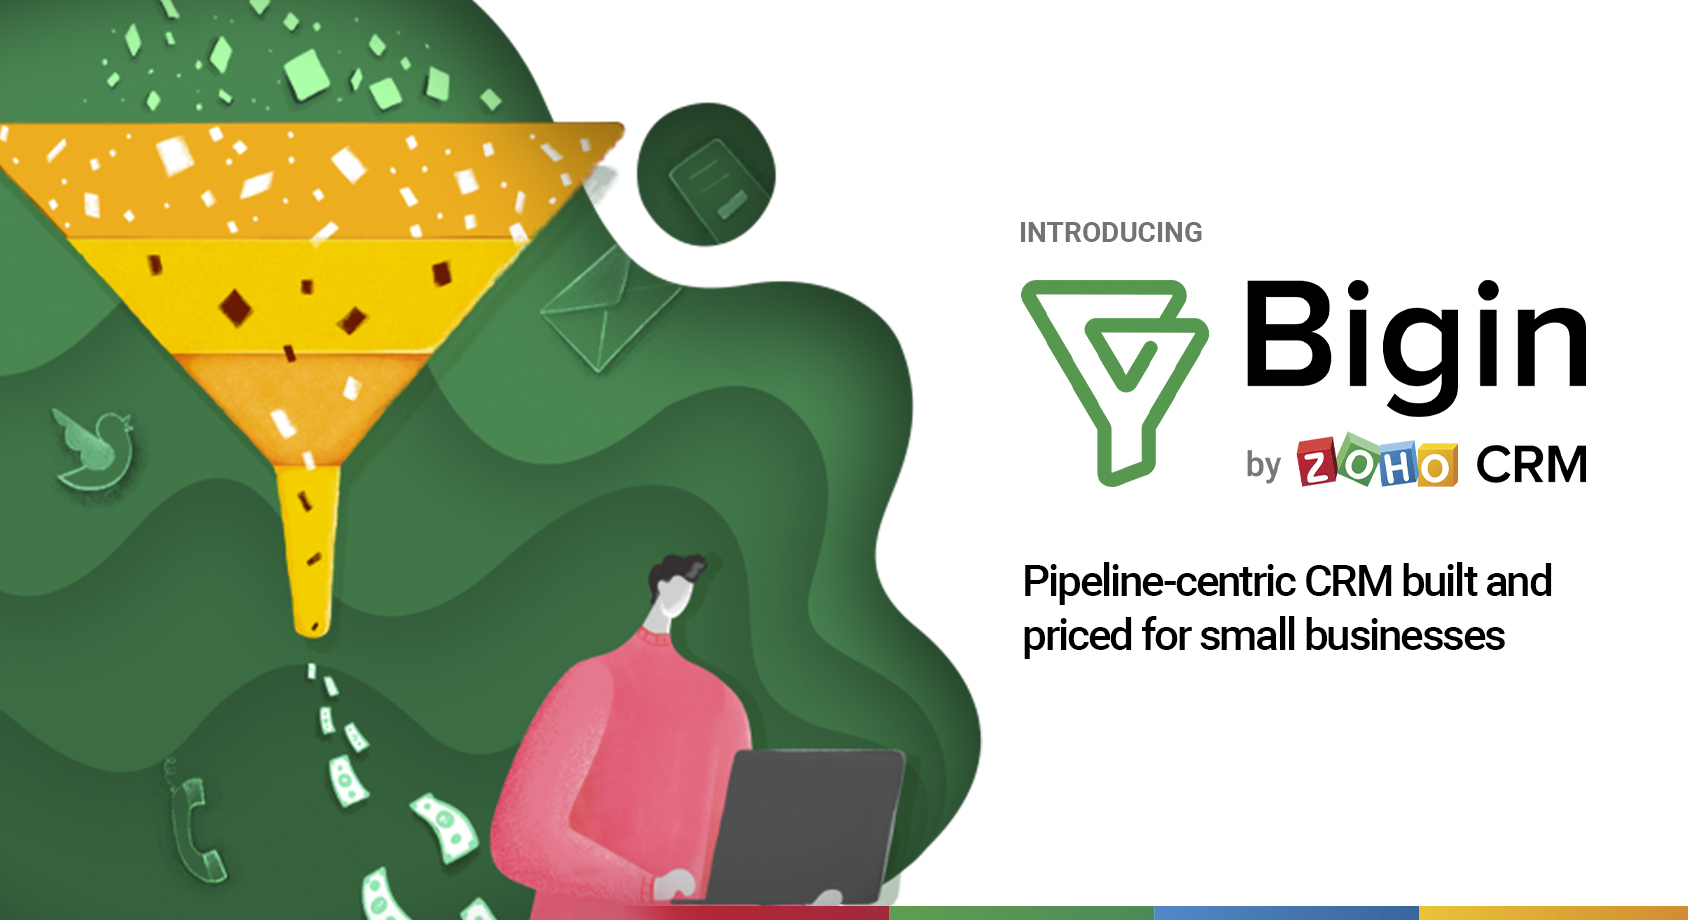 Zoho CRM introduces Bigin: A new pipeline-centric CRM built and priced for small businesses